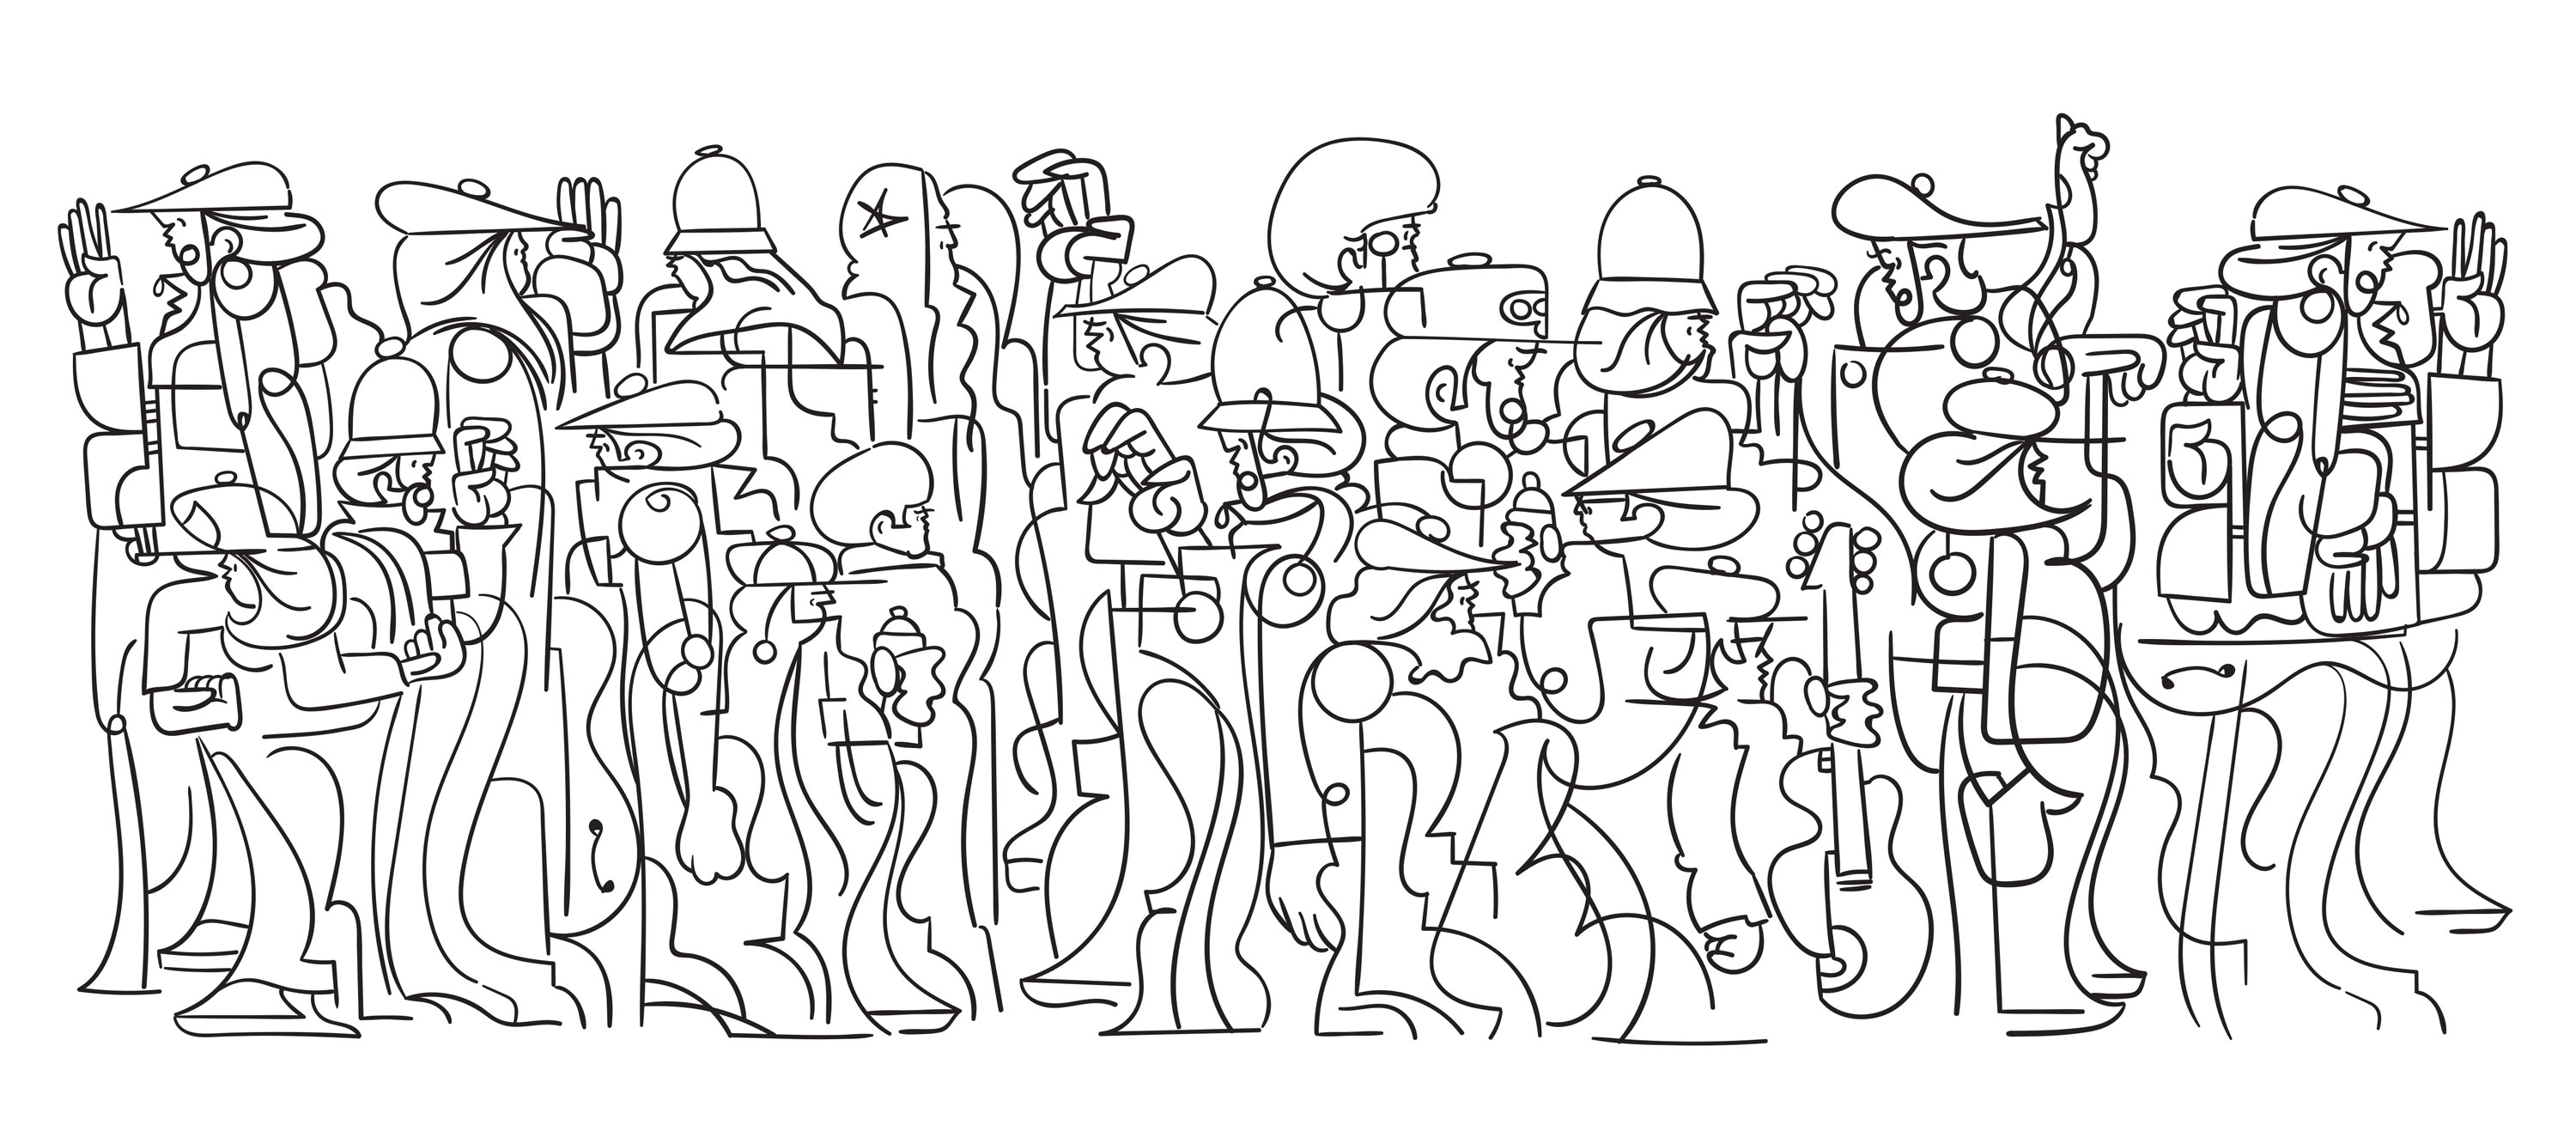 Digital line work illustration of a group of people by by Ryan Seslow